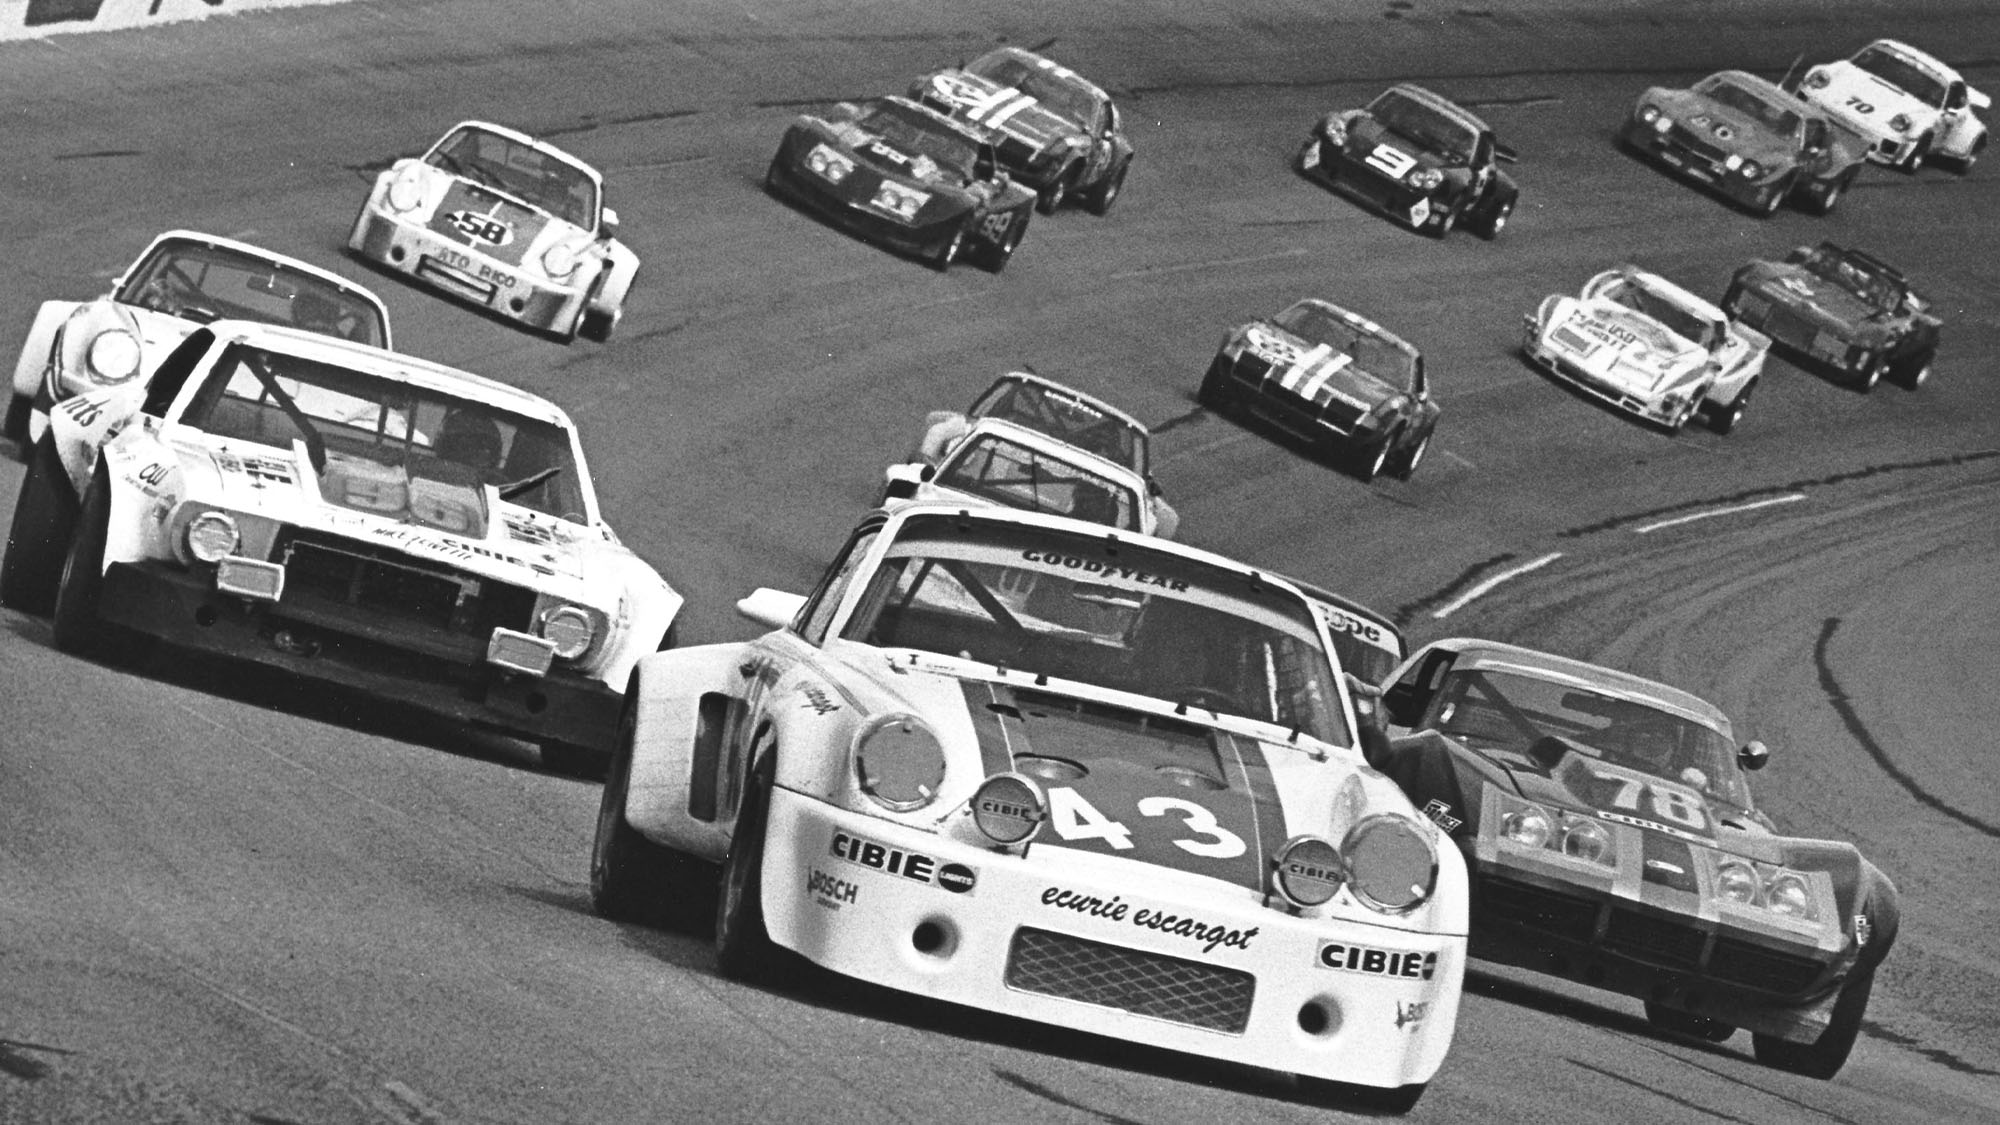 DAYTONA BEACH, FL — February 5, 1977: From 12th on the grid, the No. 43 Porsche 911 Carrera RSR of Dave Helmick, Hurley Haywood and John Graves gets set for the start of the 24 Hour Pepsi Challenge at Daytona International Speedway. The team would go on to win the race. (Photo by ISC Images & Archives via Getty Images)